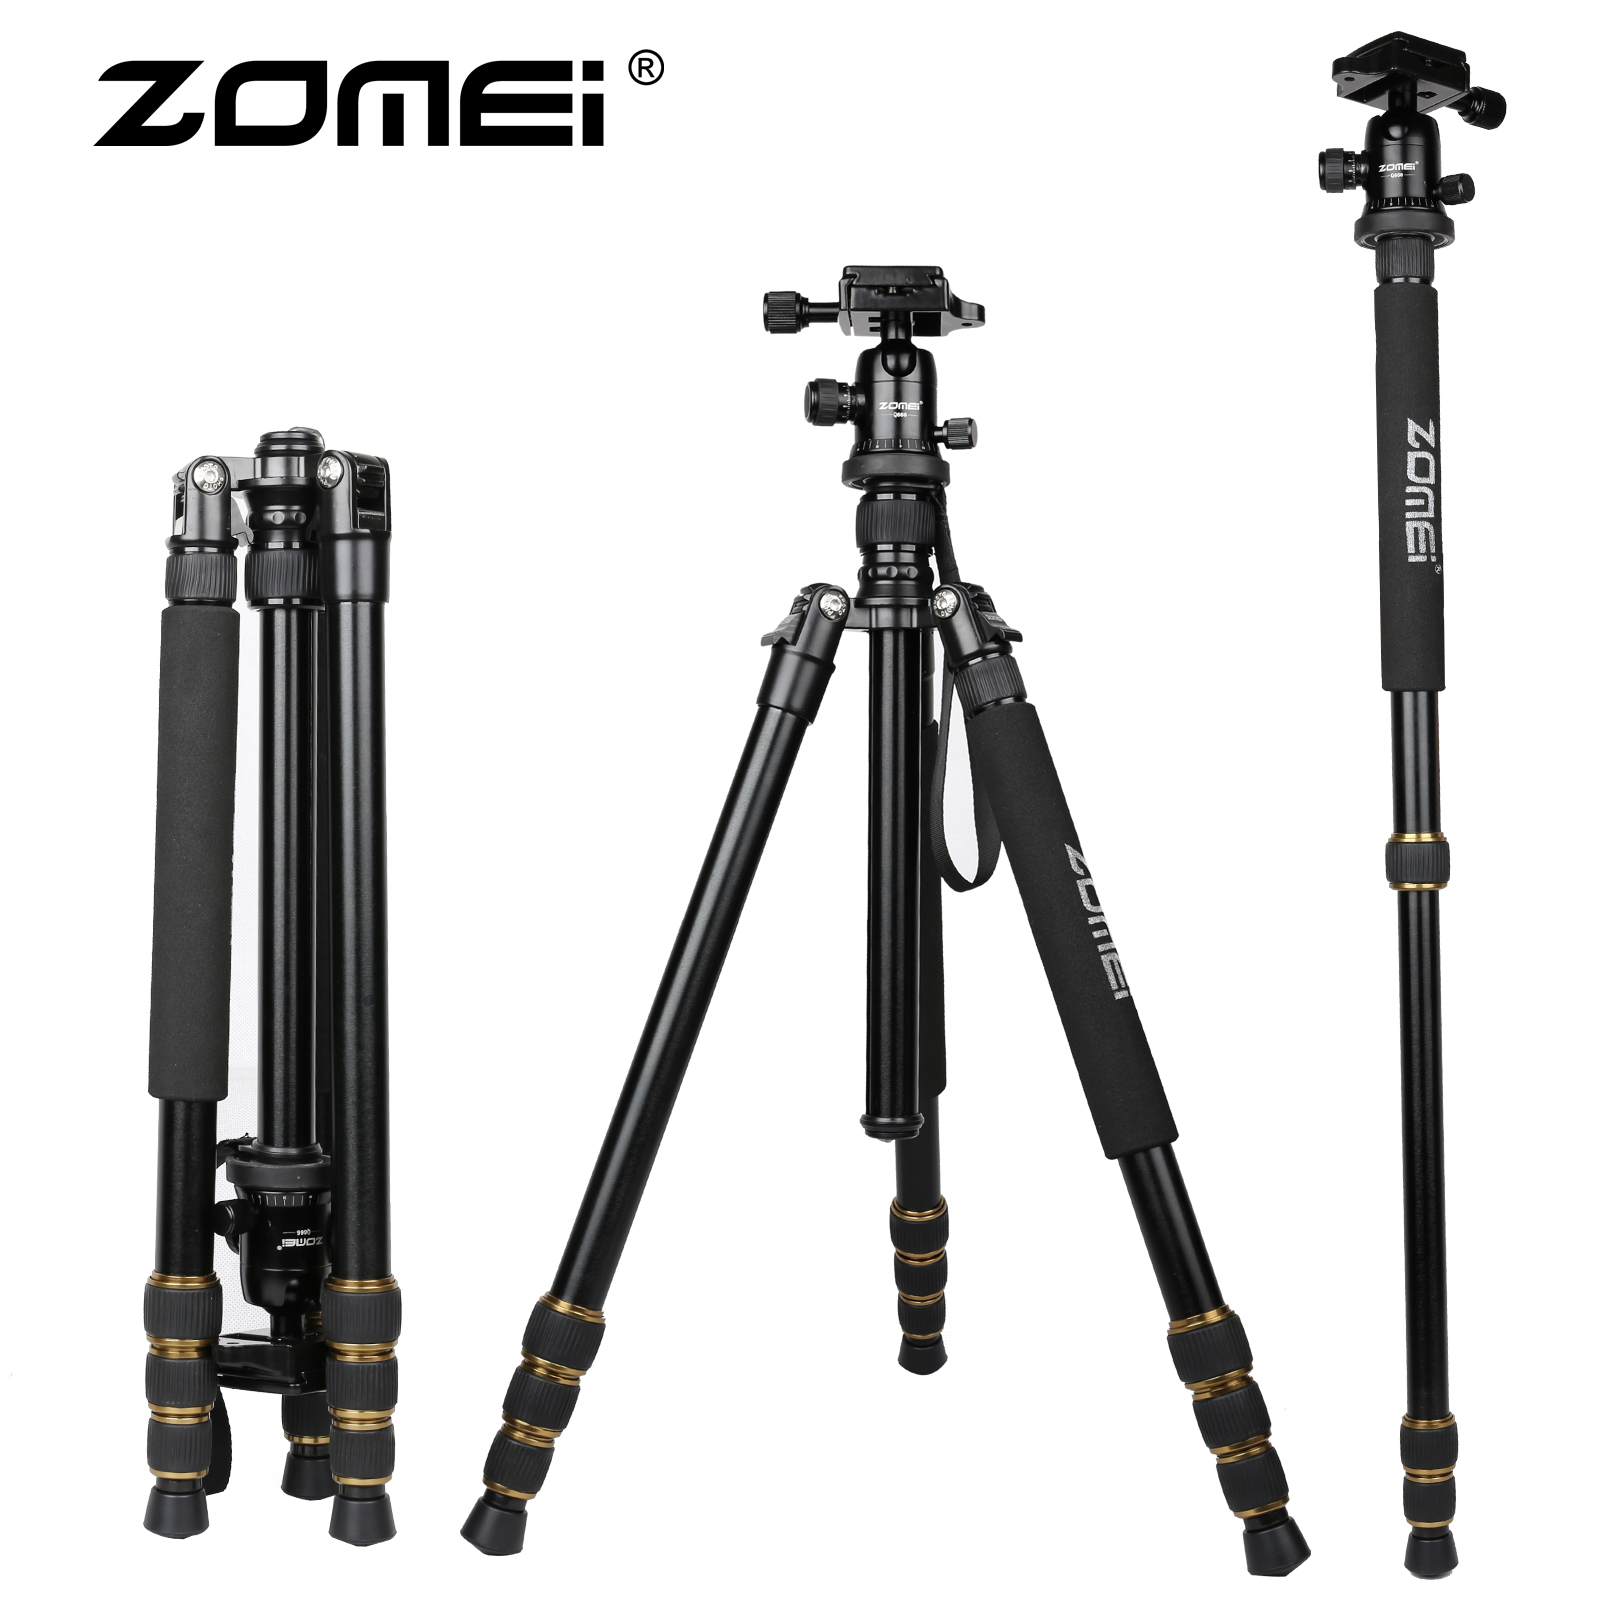 Zomei Q666 Professional Tripod Monopod with Ball Head Compact Travel Tripods Portable Camera Stand for SLR DSLR Digital Camera zomei z688 aluminum portable tripod monopod with ball head photographic travel compact for digital slr dslr camera stand